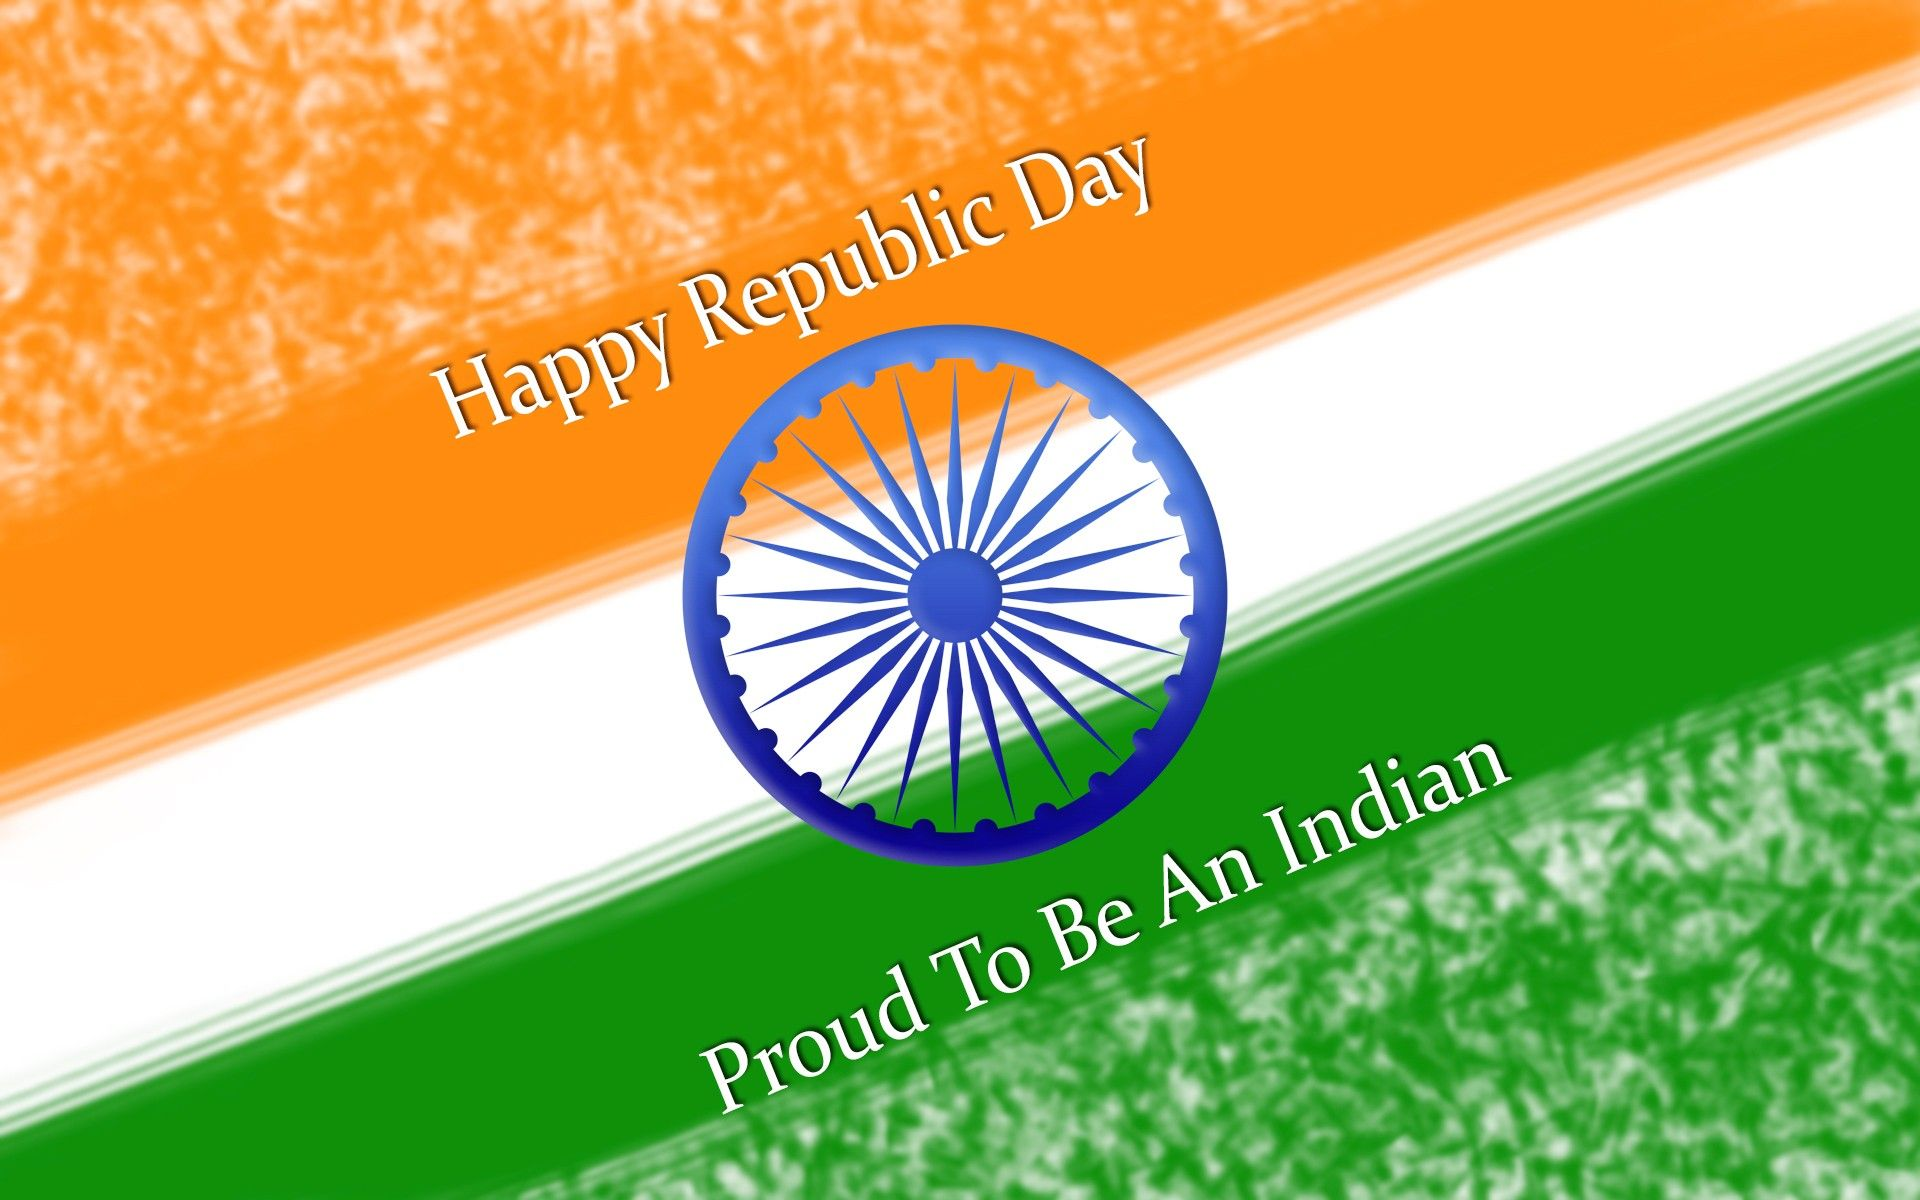 hope peace reigns in your part of the world today and everyday hope peace reigns in your part of the world today and everyday wishing you all a very happy republic day